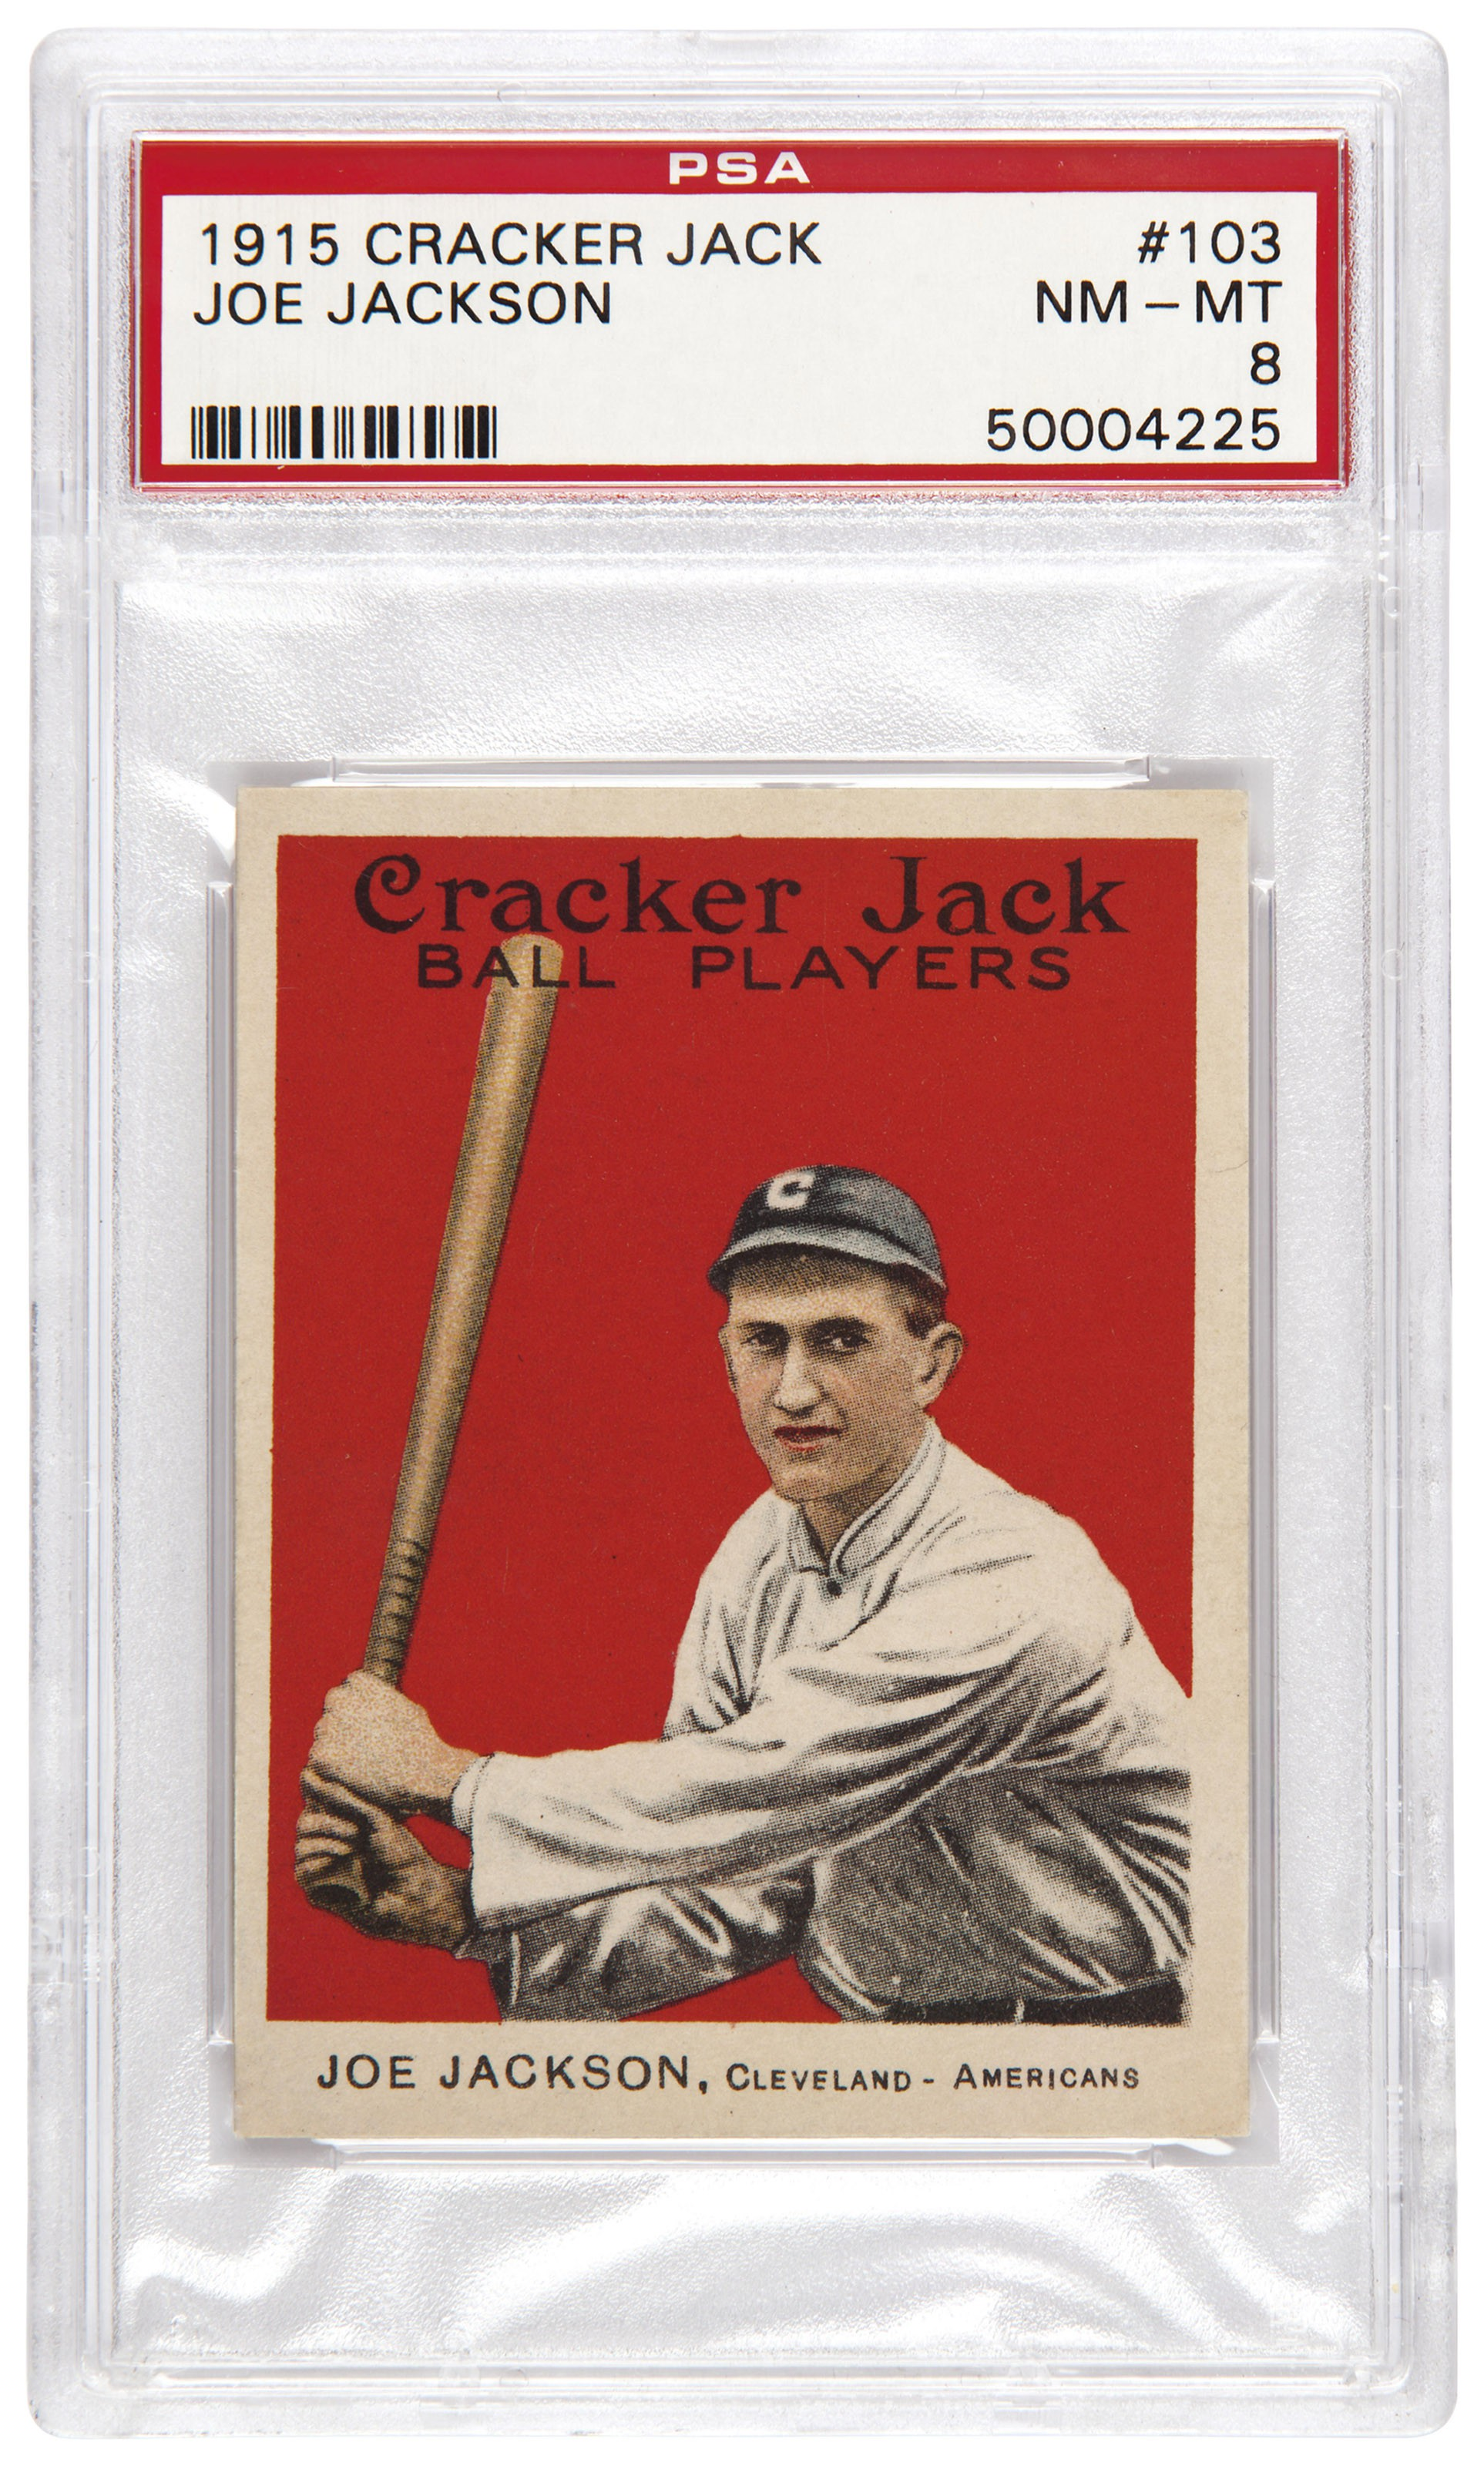 1915 Cracker Jack #103 Joe Jackson. Estimate                    $50,000-70,000. This lot is offered in The Golden Age of Baseball, 29 March to 6 April 2018, Online